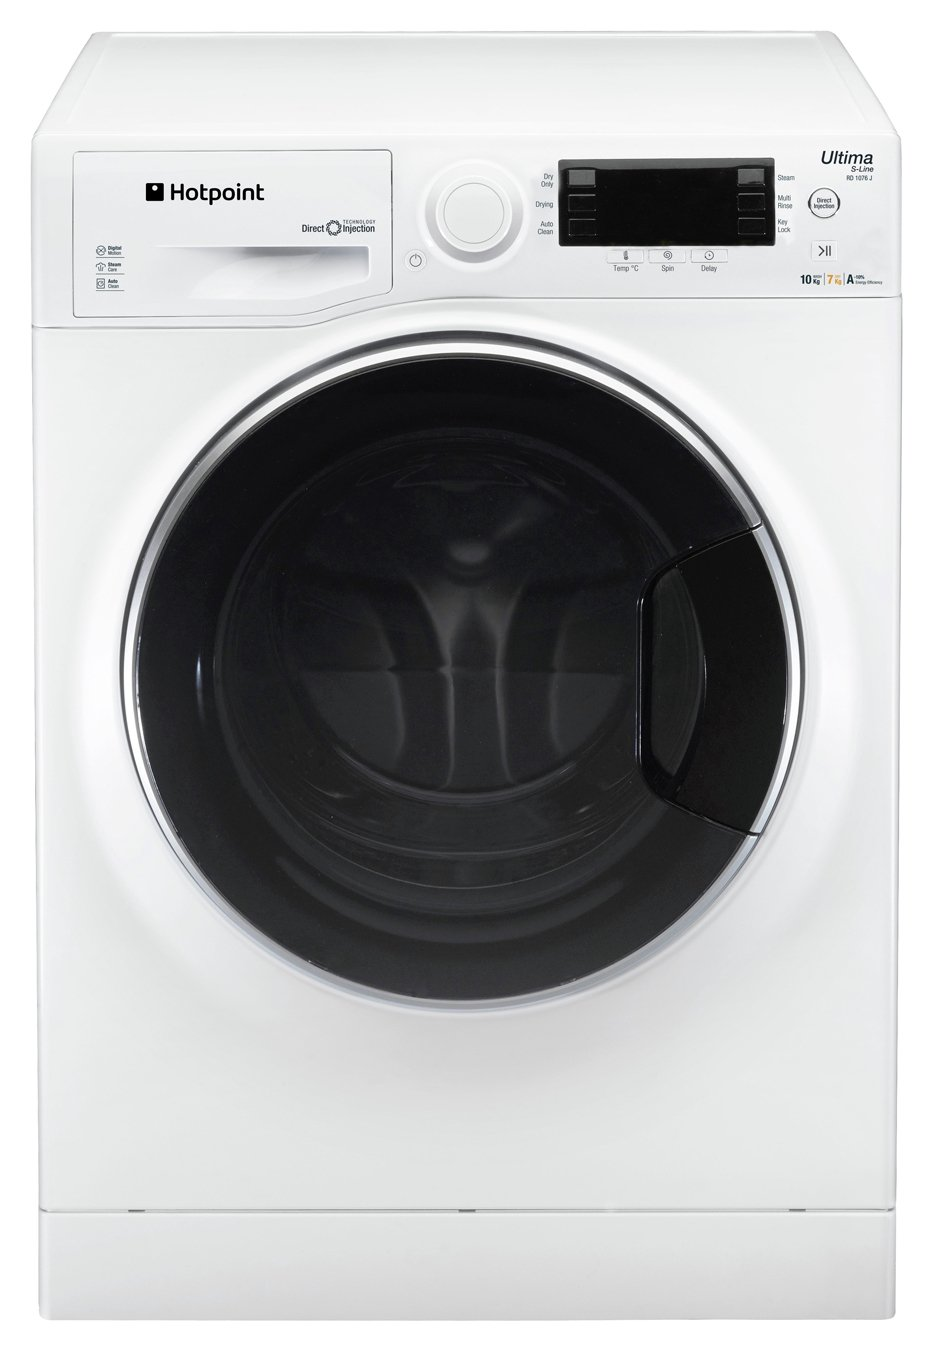 Hotpoint RD966JDUK Washer Dryer - White from Hotpoint